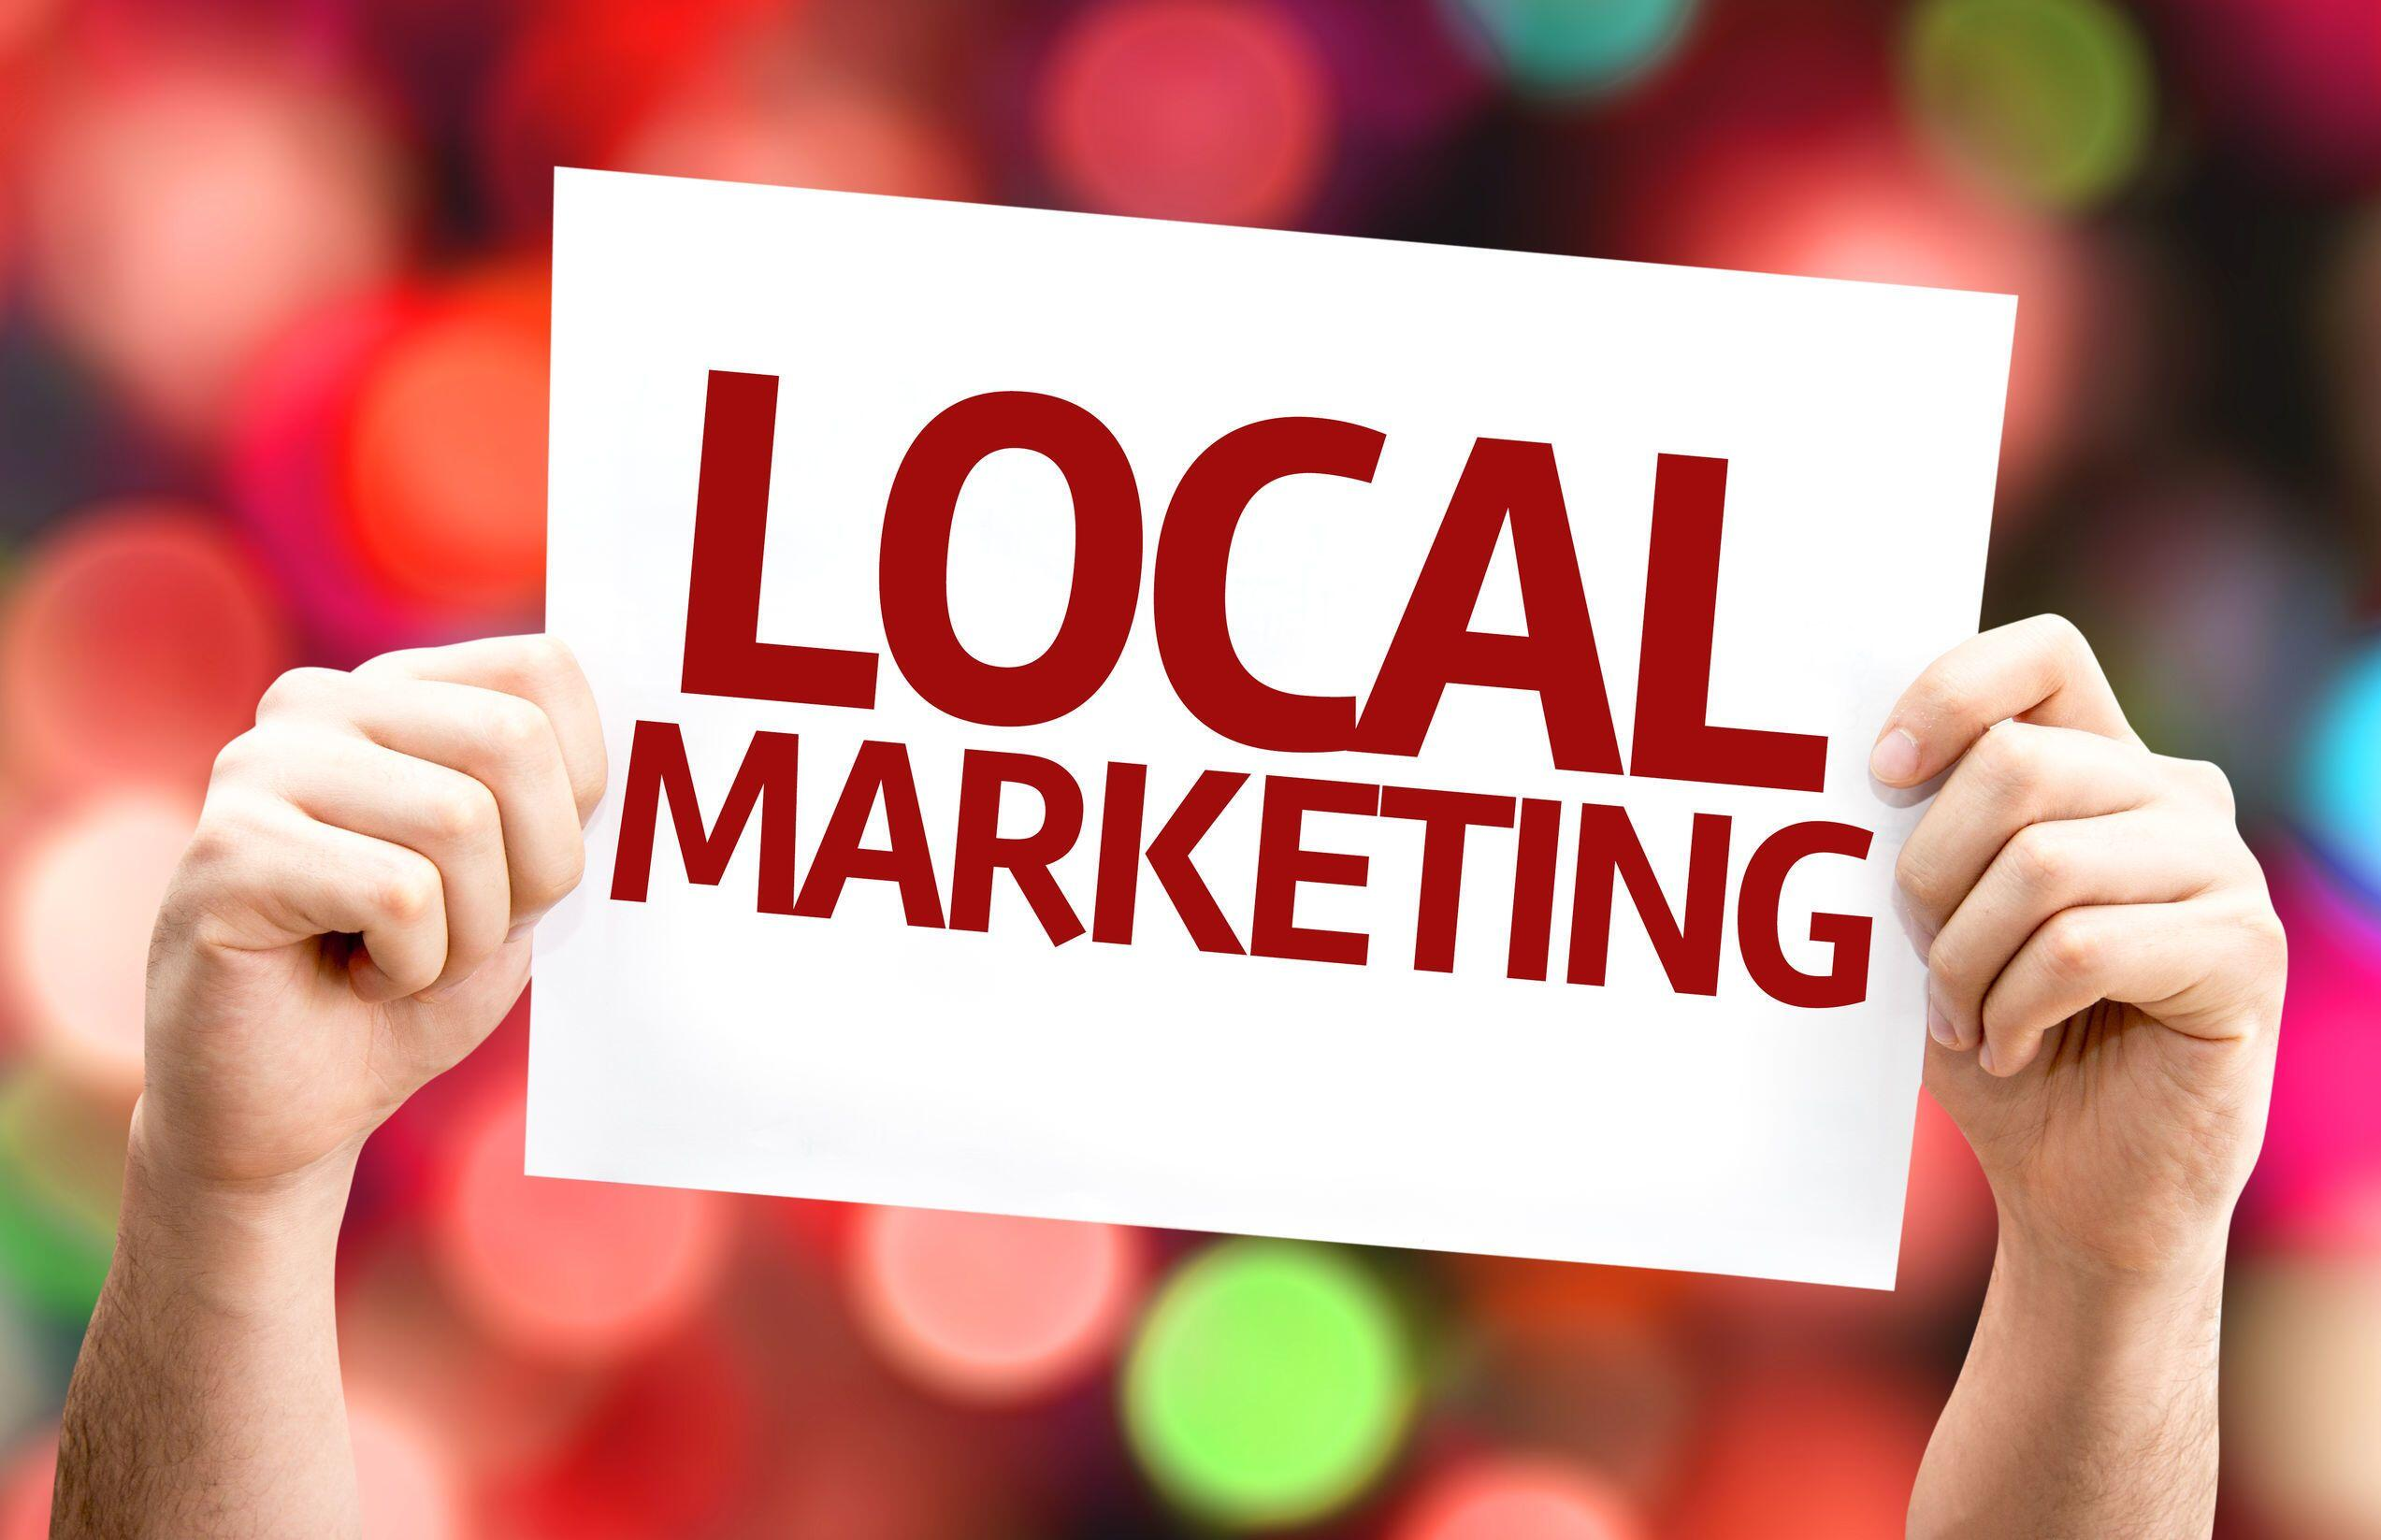 Local Marketing in 2020: 3 Important Areas To Focus On